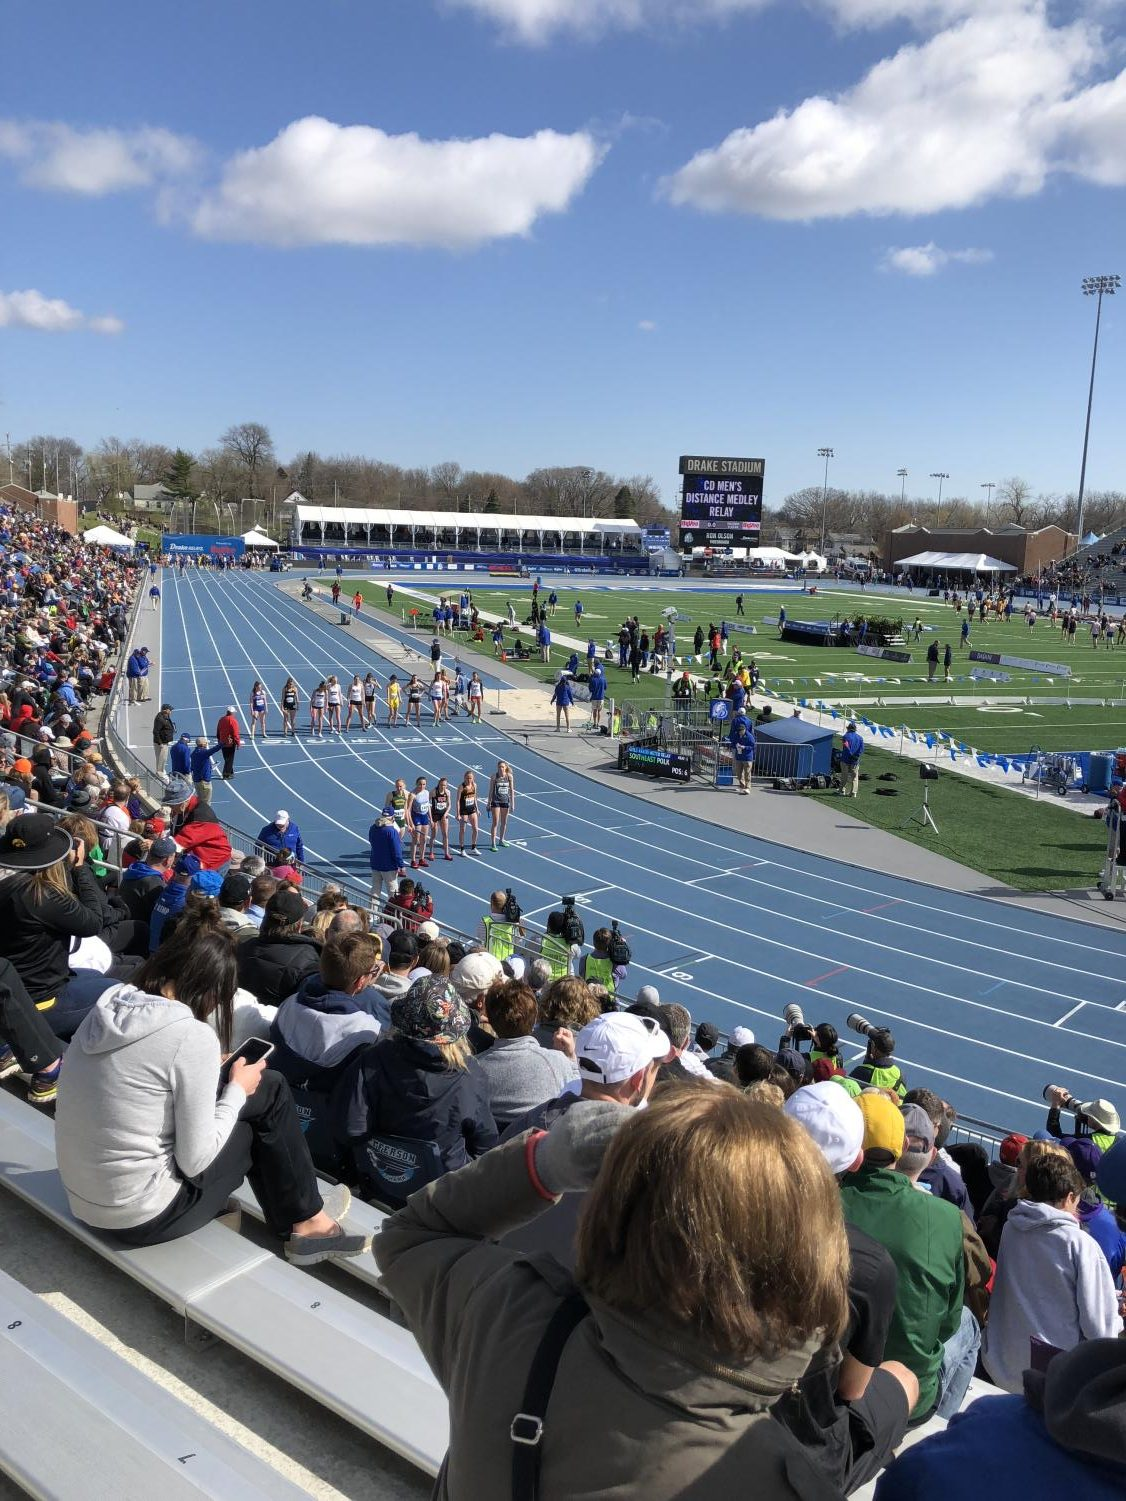 The finest 4x800 meter runners from all four classes  line up for their final event at the 2018 Drake Relays.